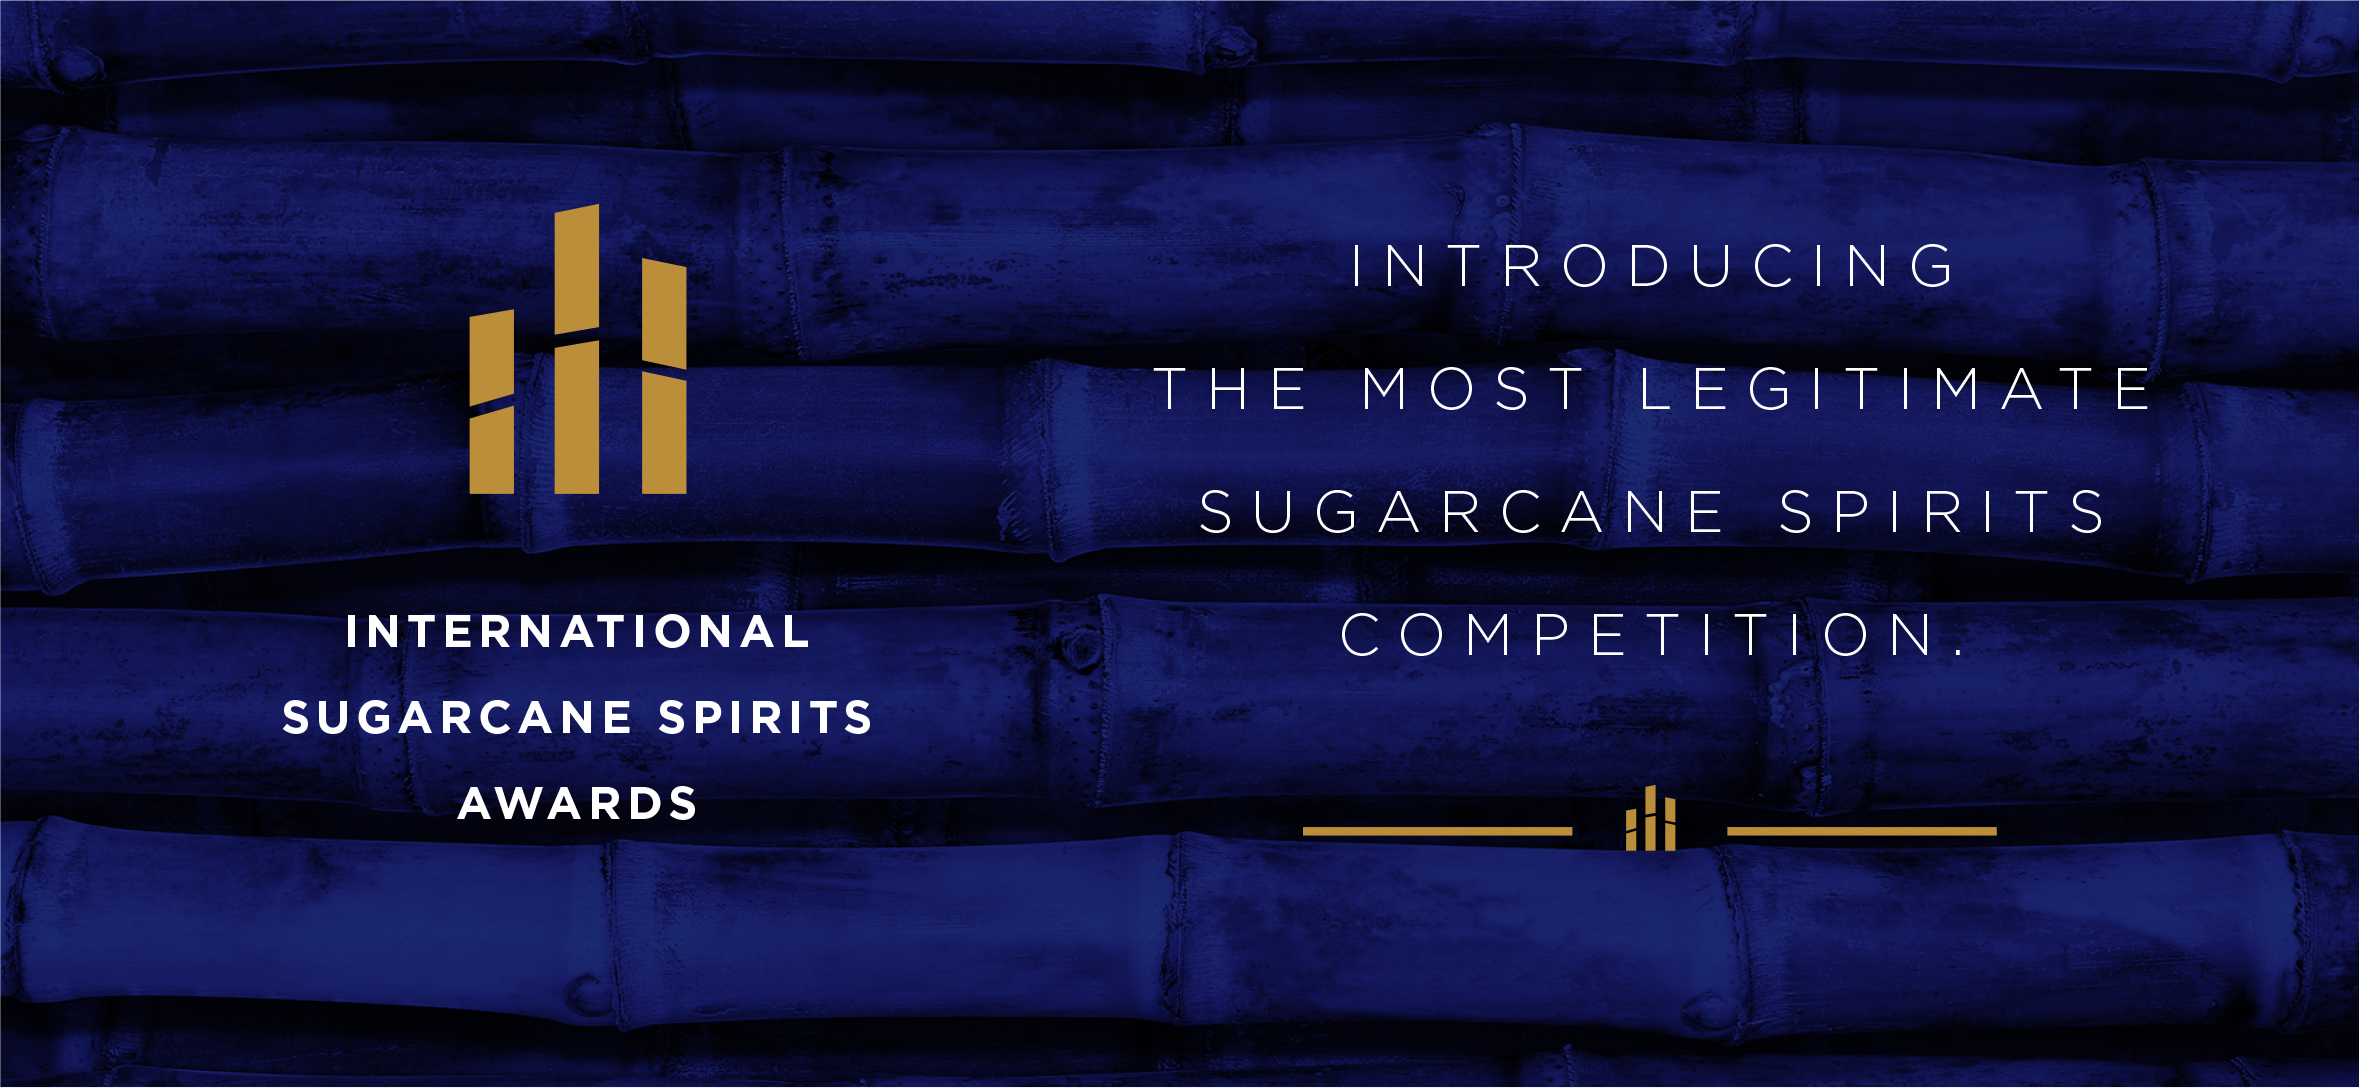 L'international Sugarcane Spirits Awards